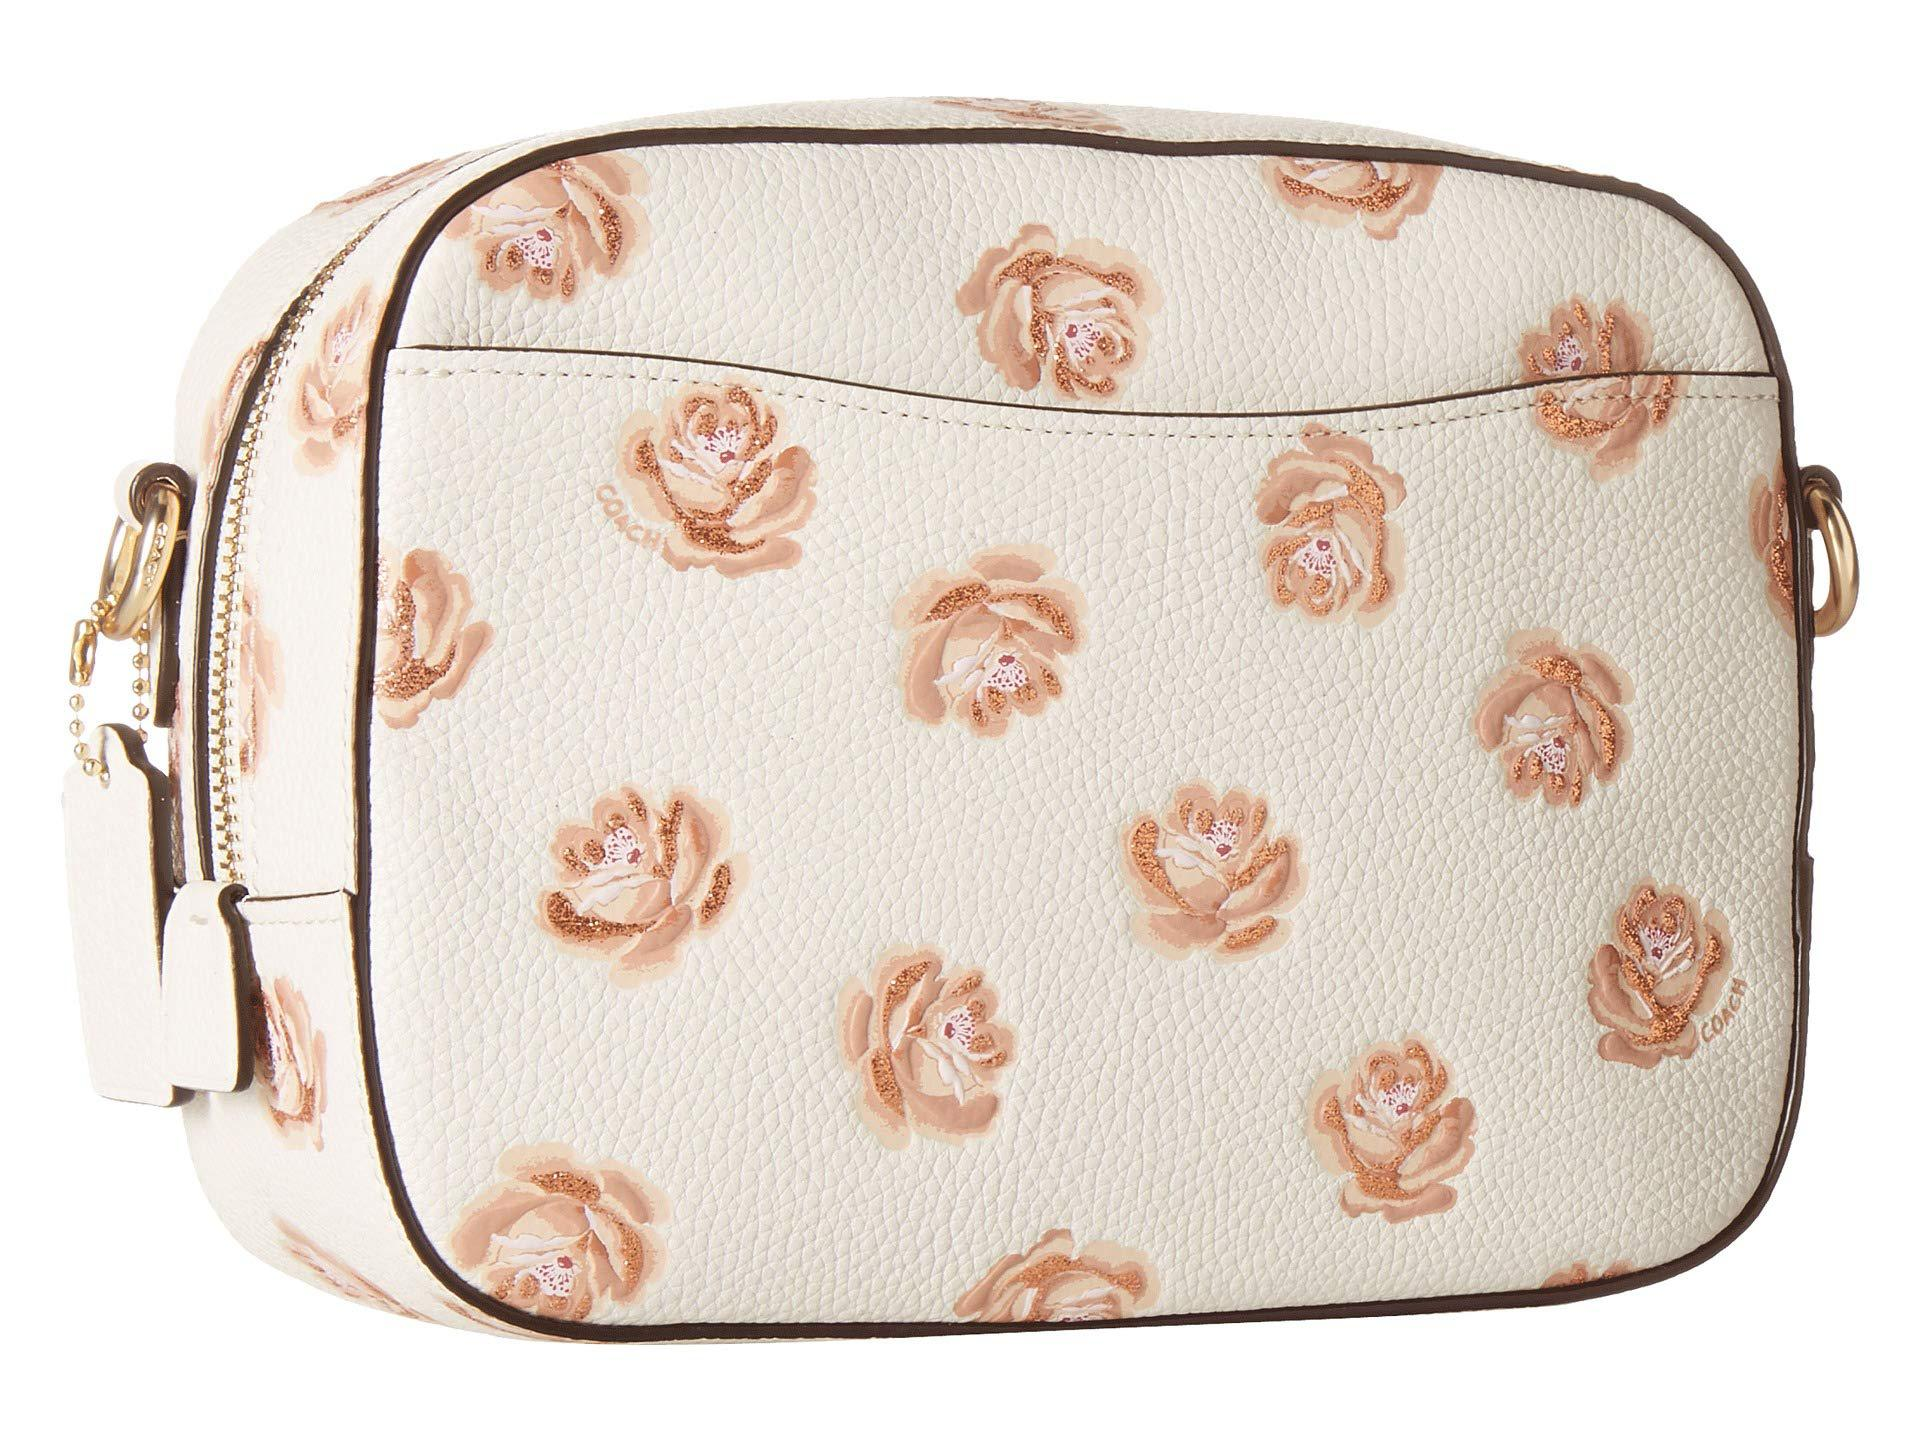 8c798f6298 Women's Camera Bag In Floral Printed Leather (sv/sky) Bags